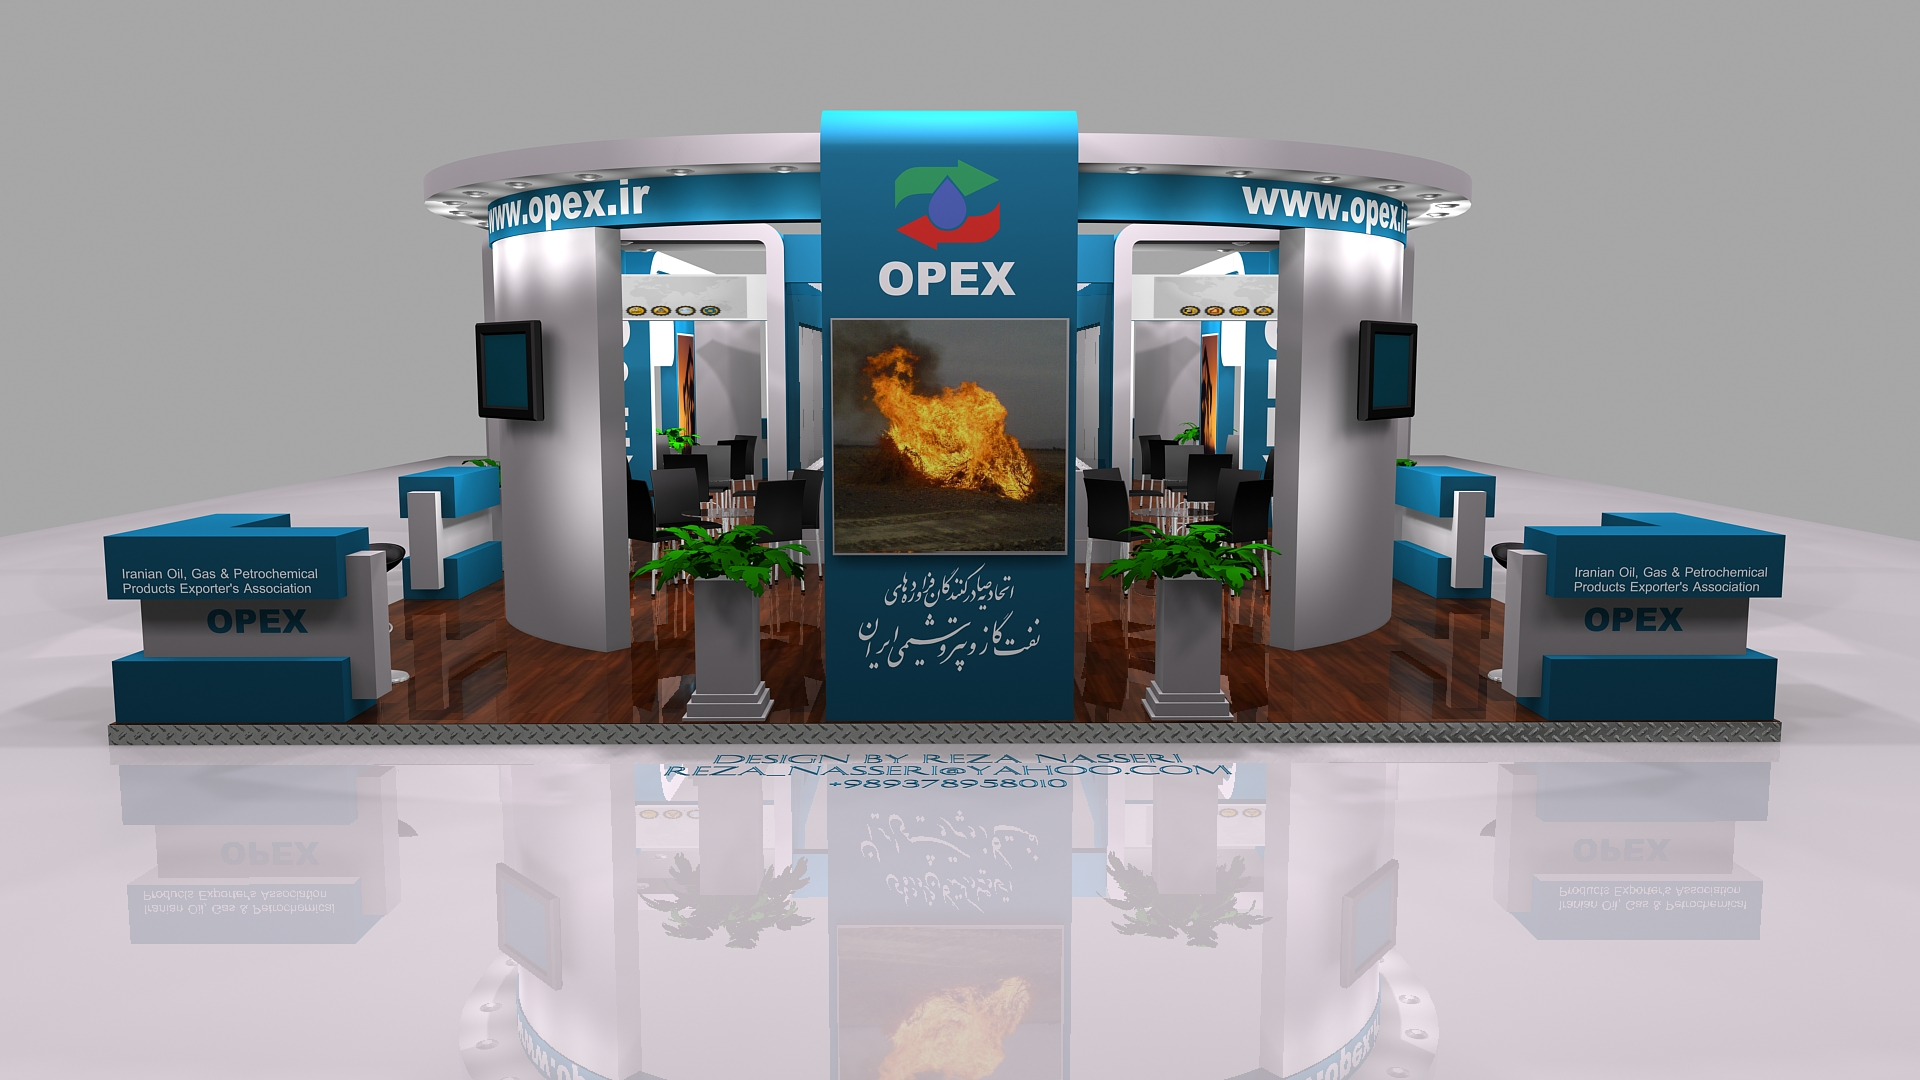 D Exhibition Stall Design Full : Opex exhibition stall design by reza nass